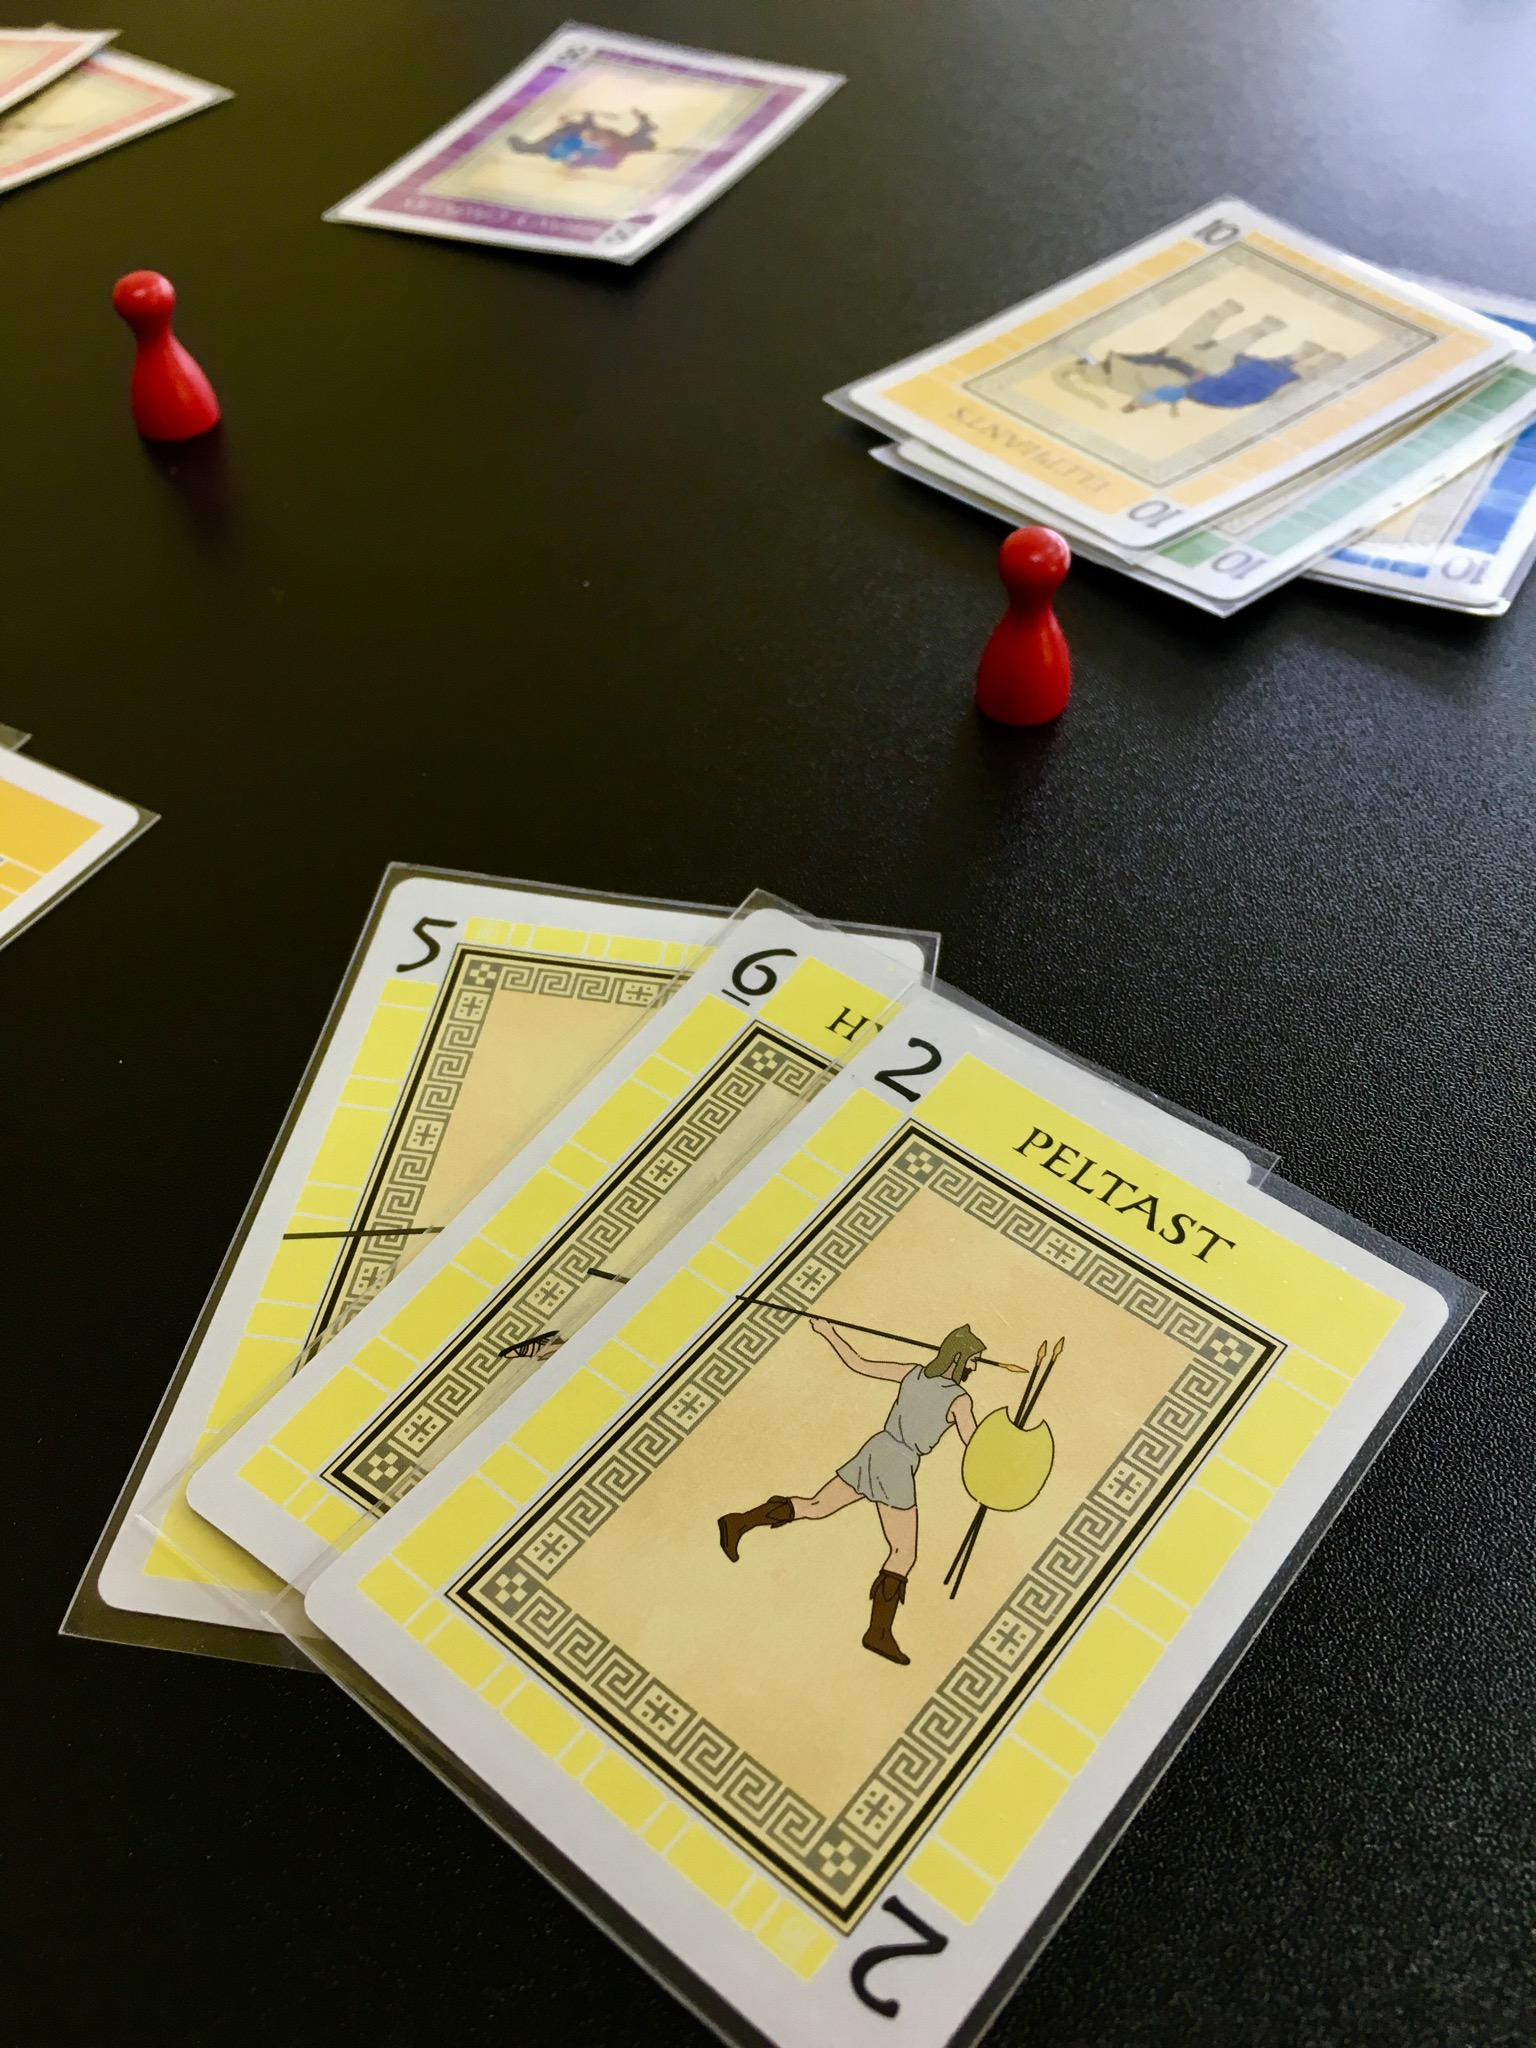 More images on two player game post